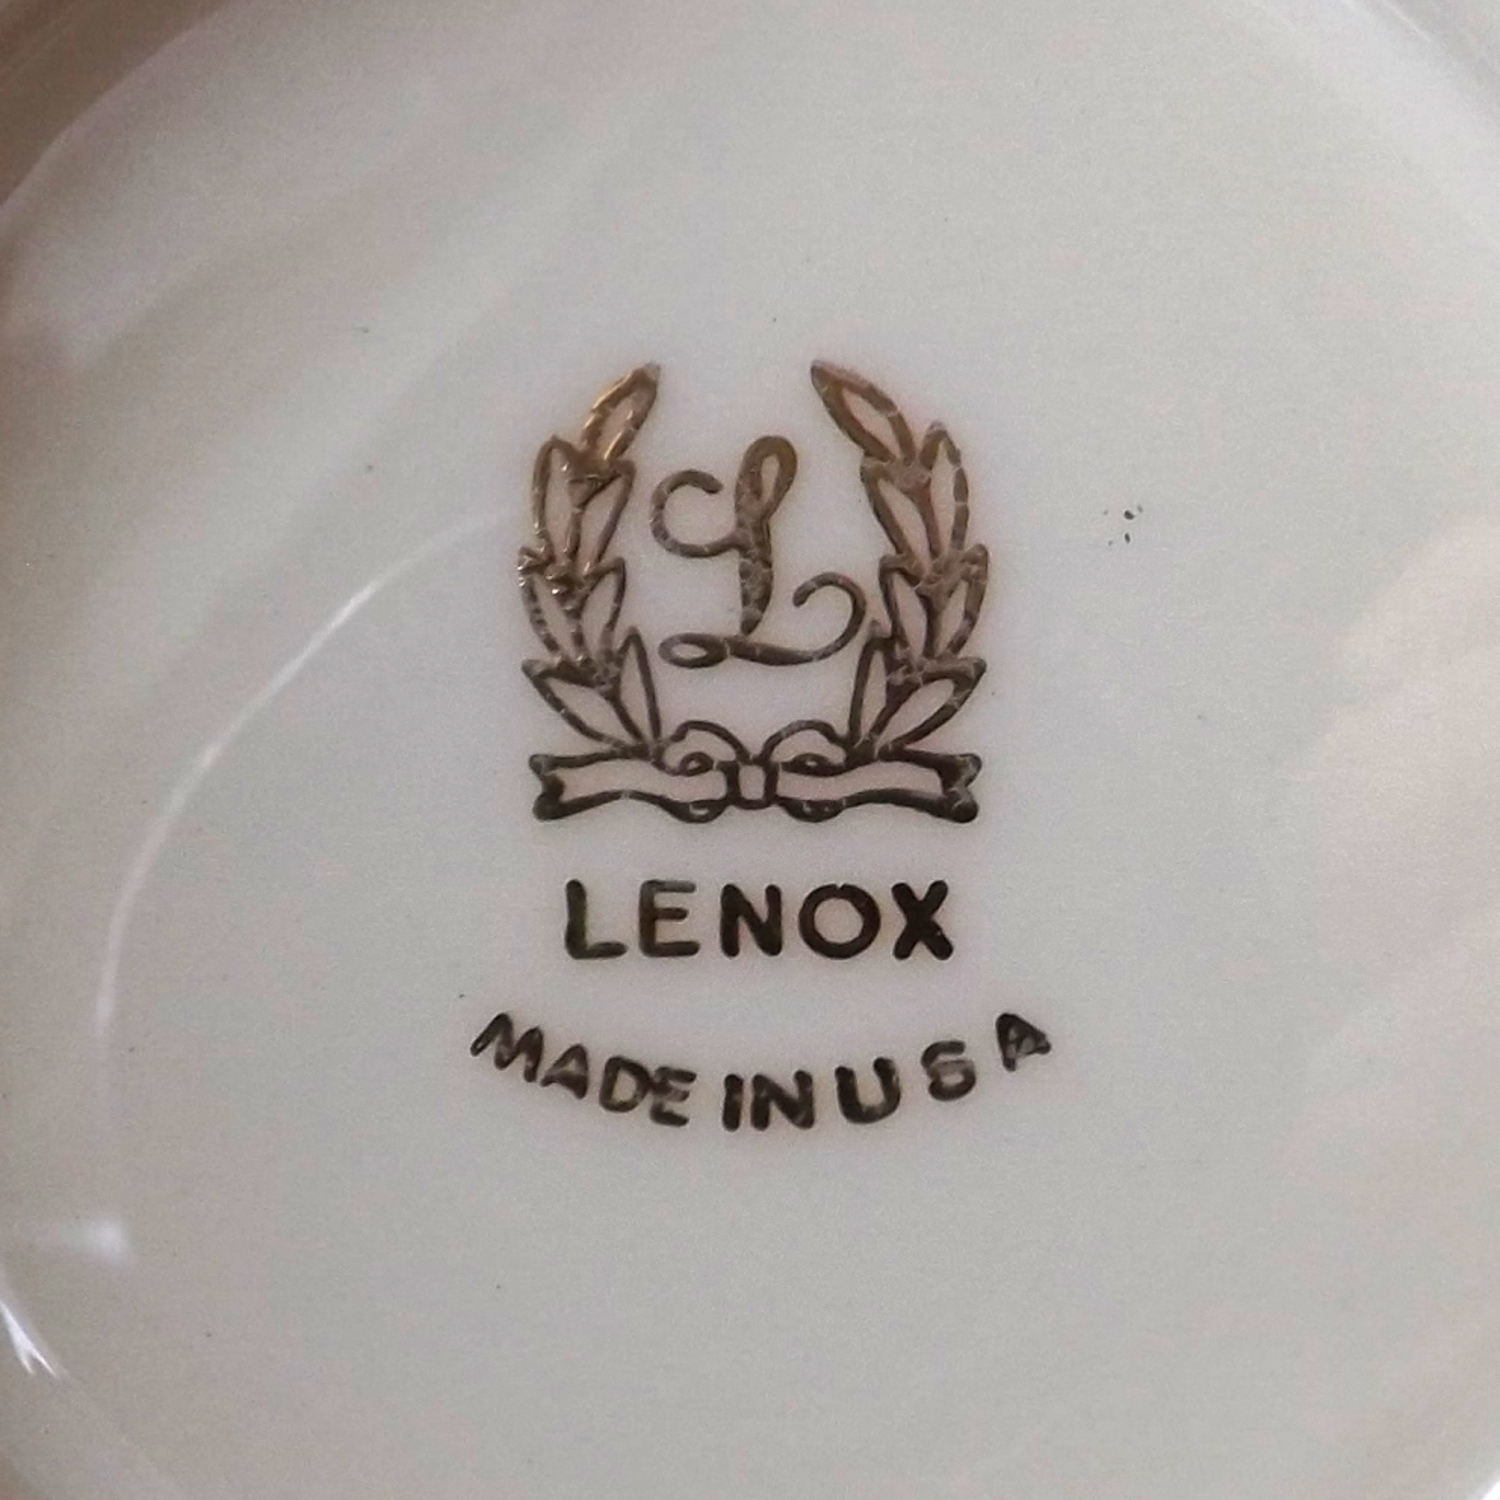 Lenox Pedestal Dish with Gold Trim Made in USA